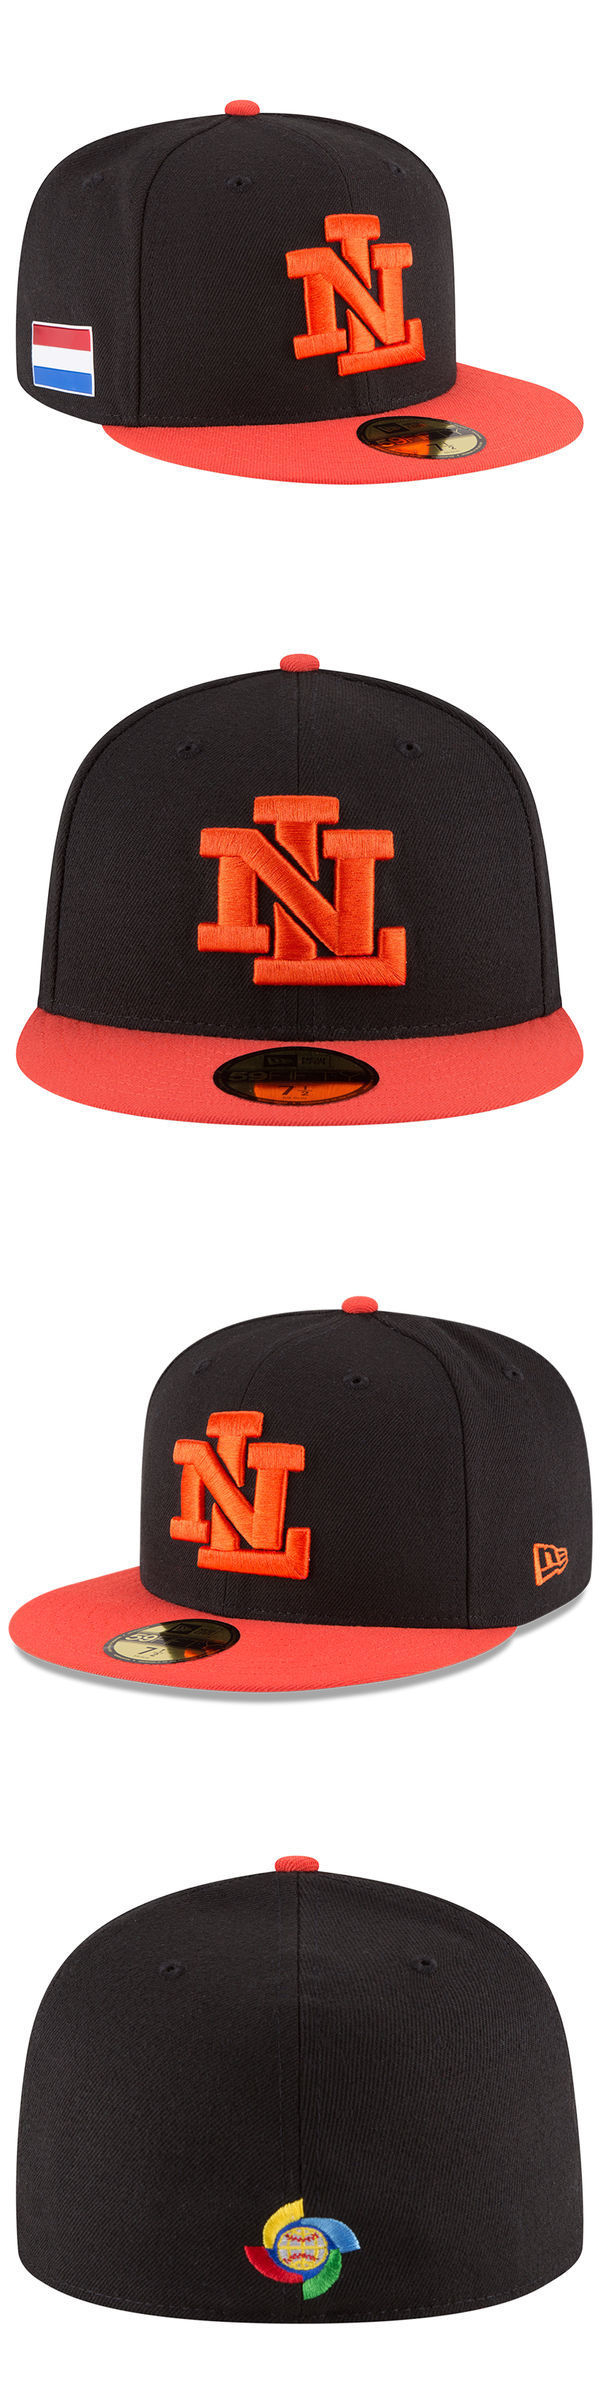 865508ca ... best price baseball other 204 new era netherlands wbc 2017 world  baseball classic black 59fifty fitted